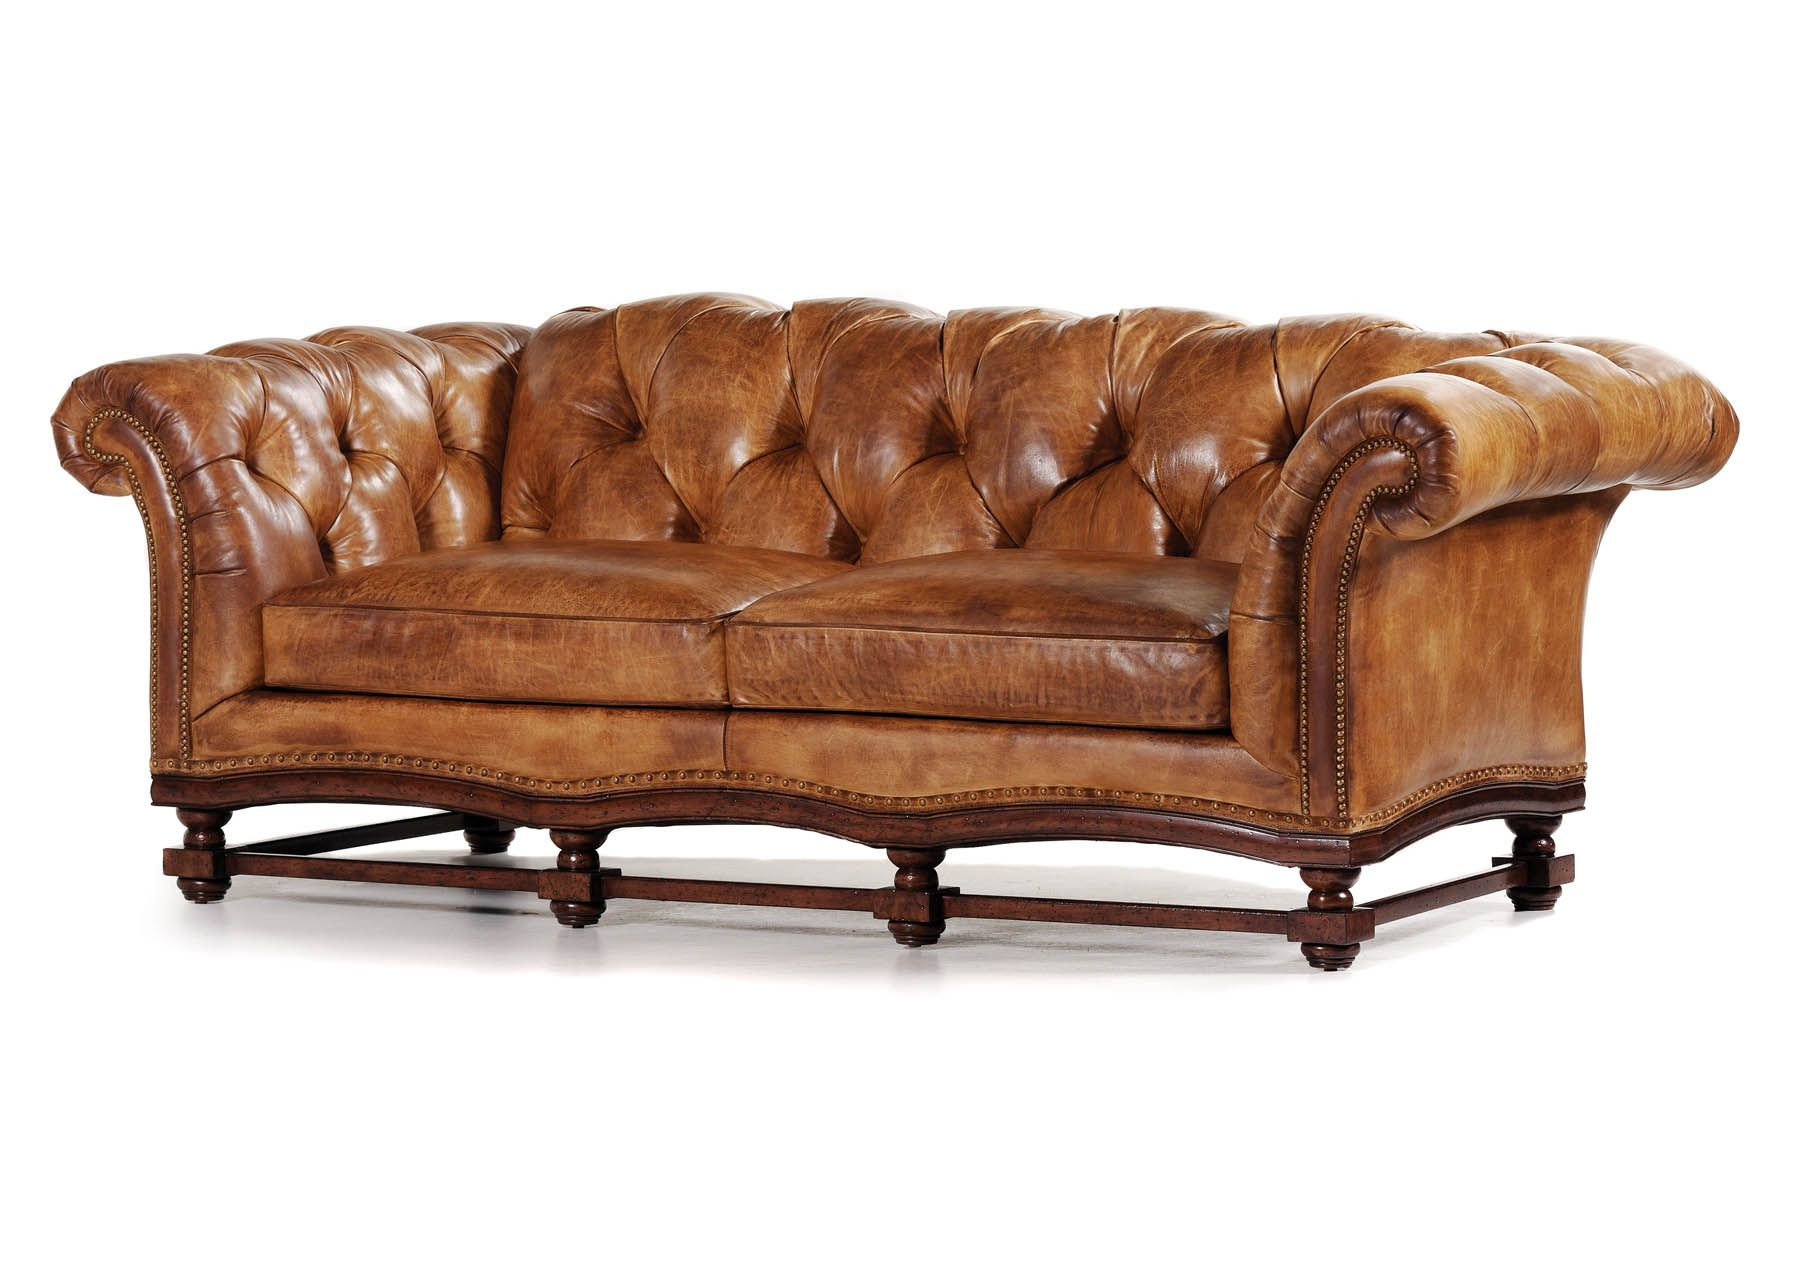 Hancock & Moore. Teton Sofa | Classic Couches & Chairs | Pinterest regarding Walter Leather Sofa Chairs